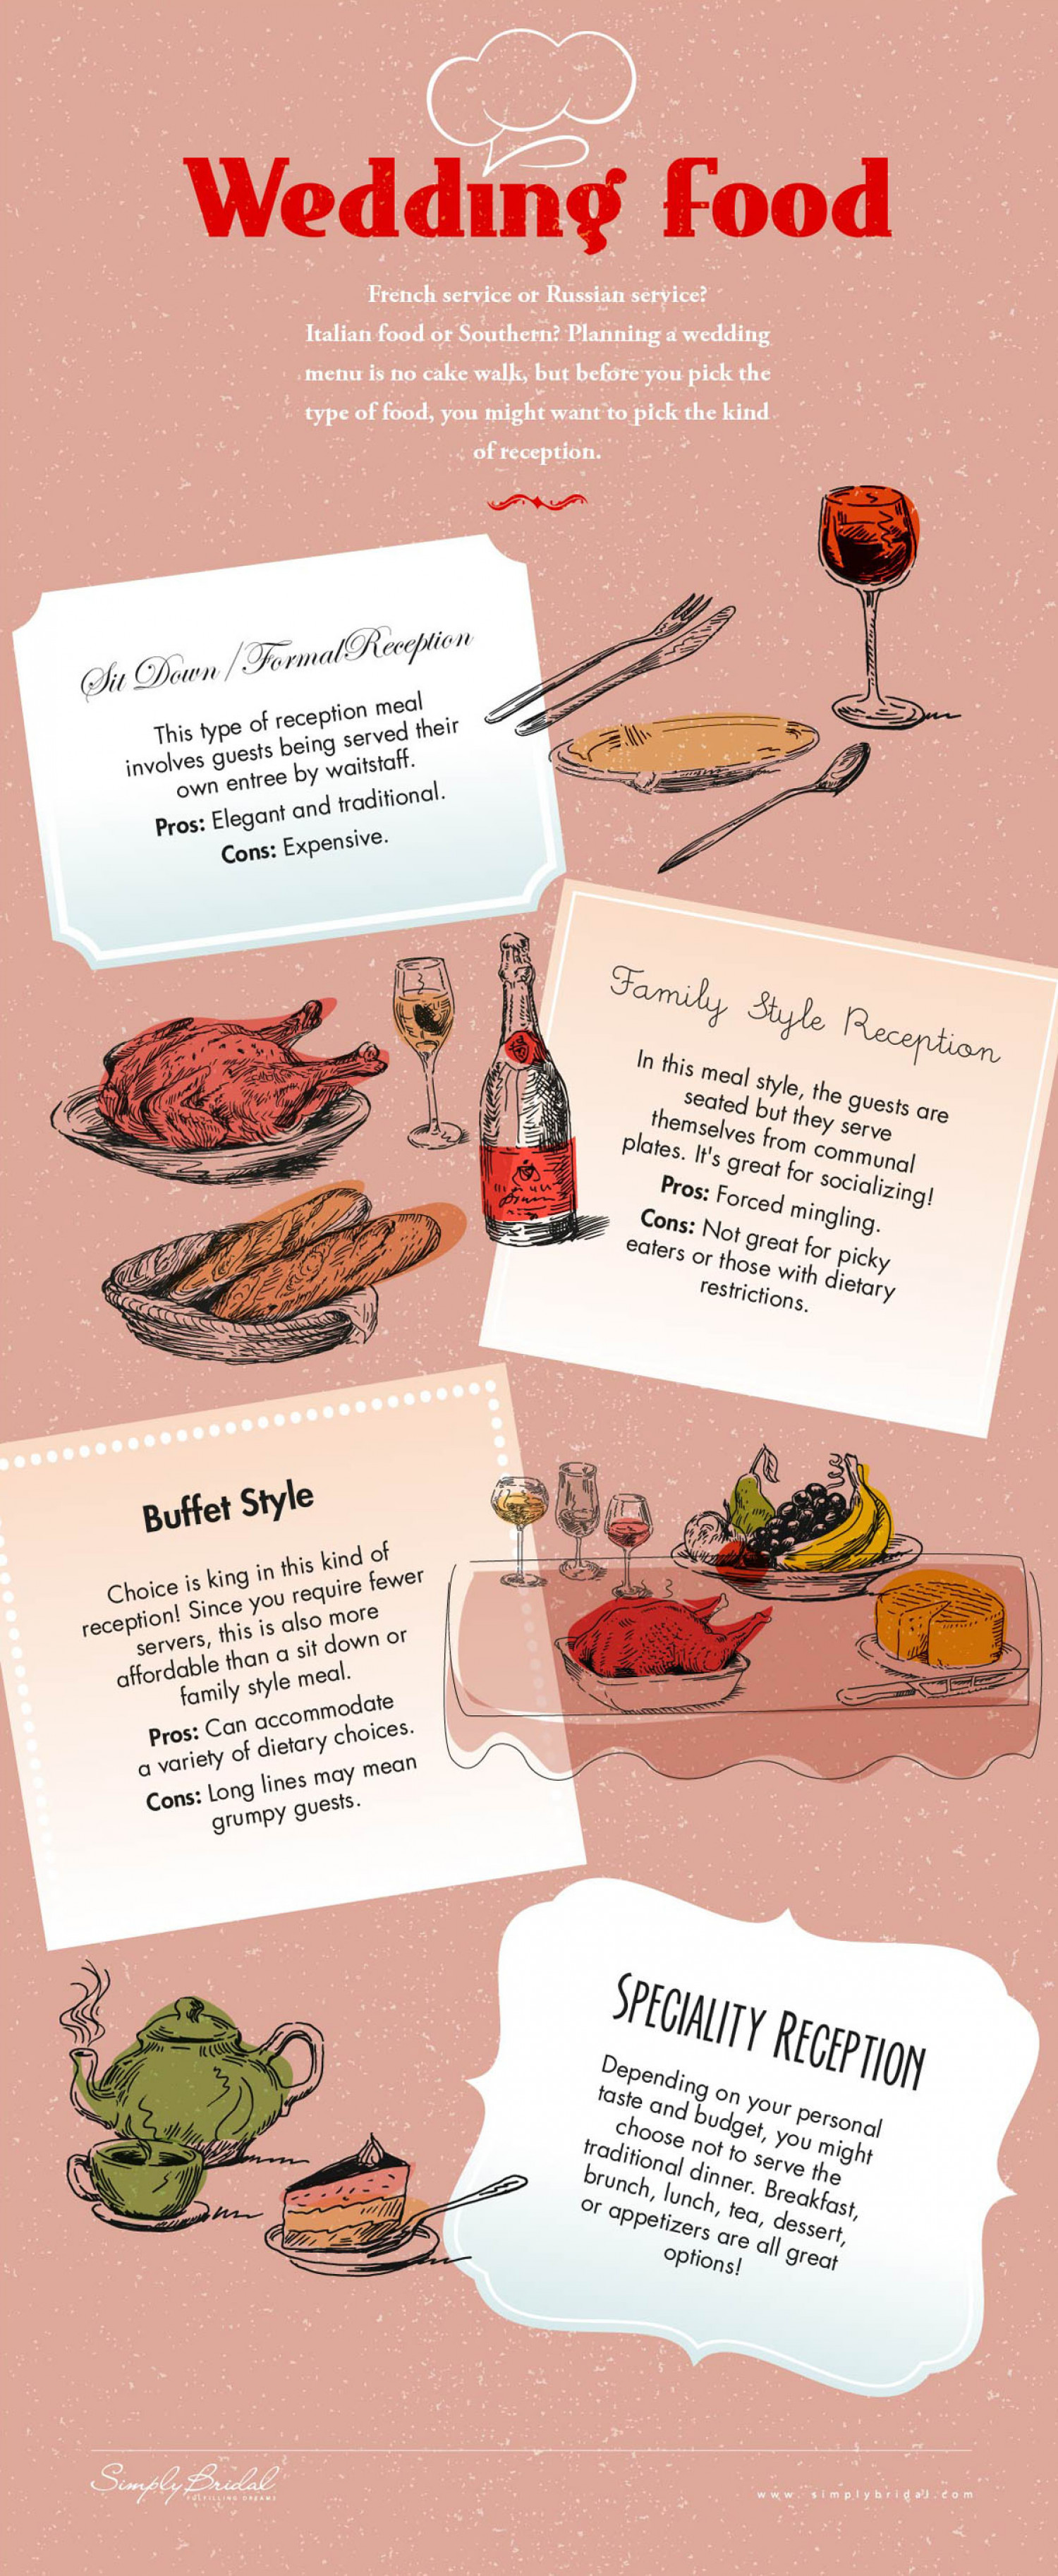 Wedding Reception Food Infographic